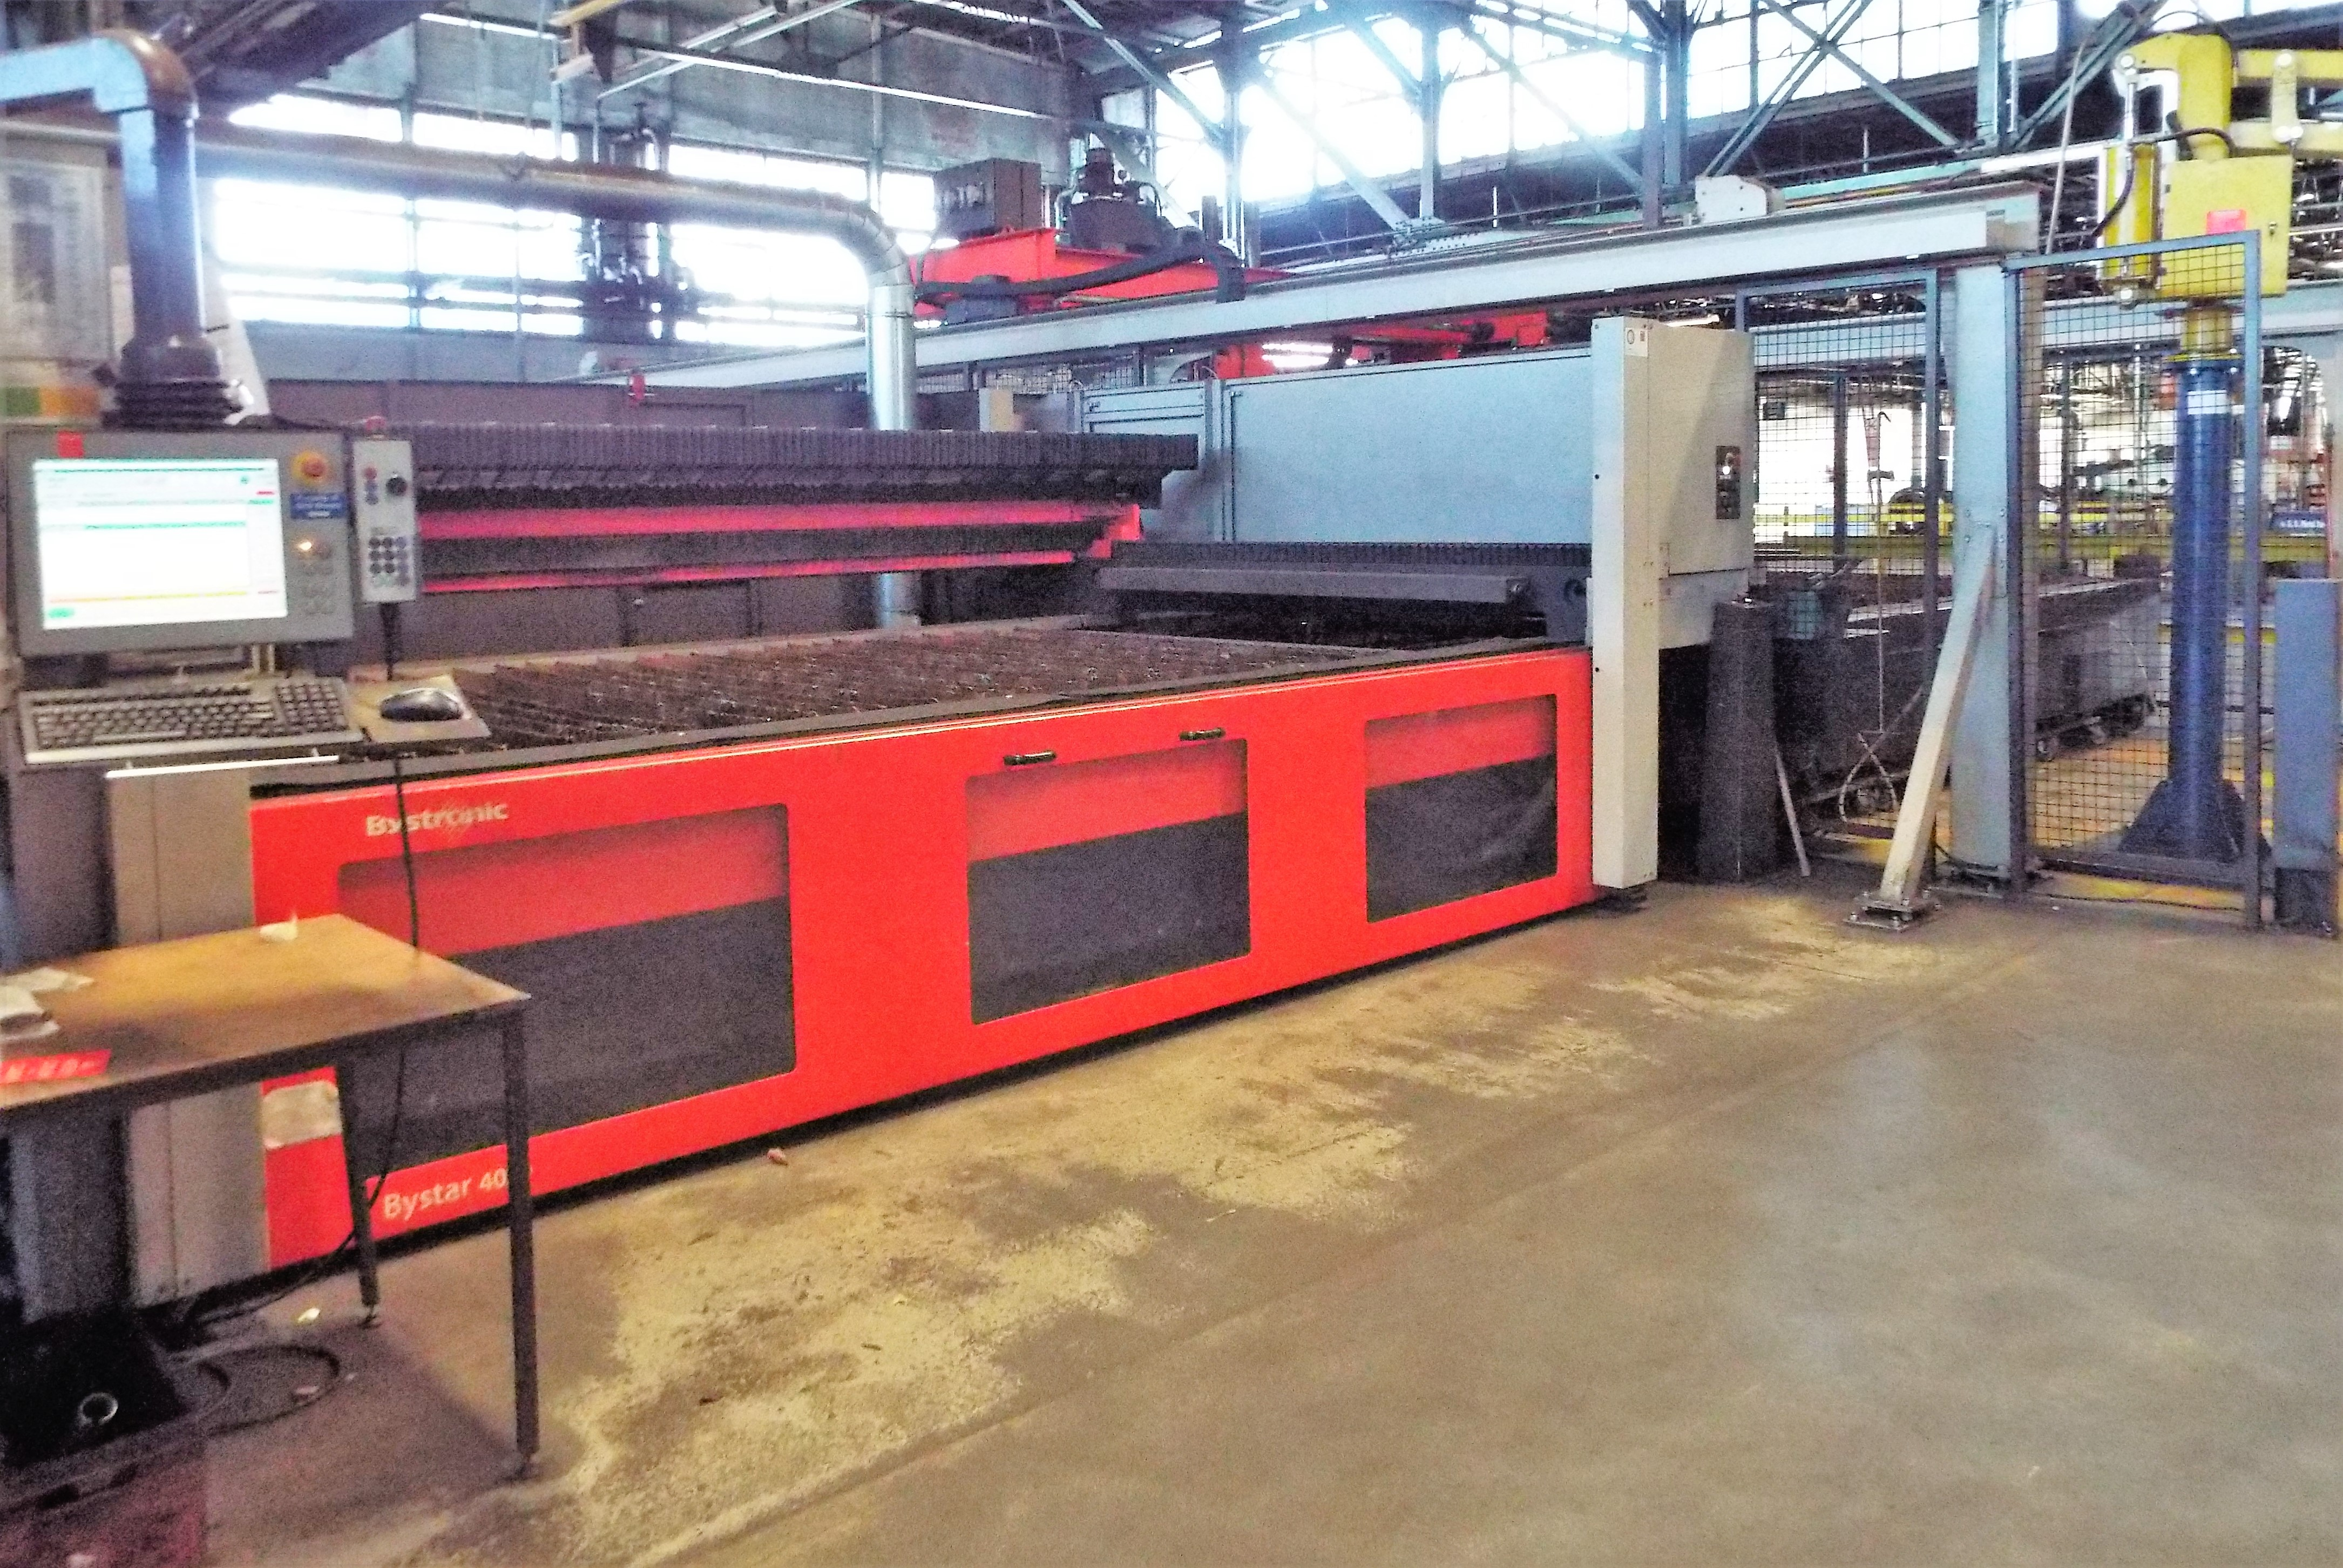 Lot 1d - Bystronic 4020 Laser Cutting Cell